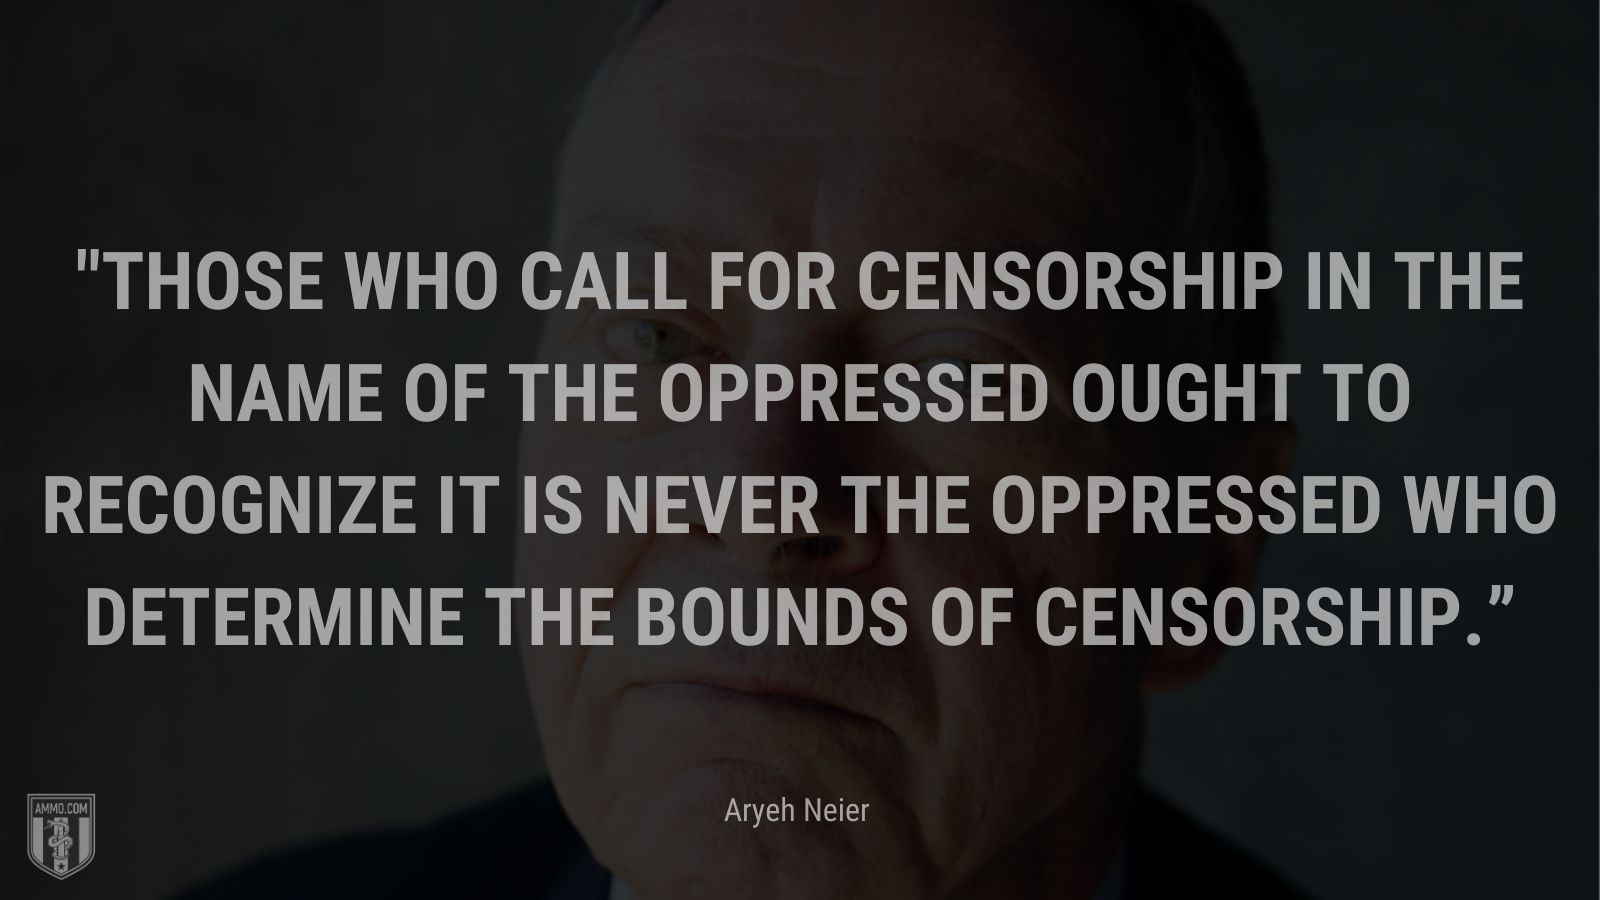 """""""Those who call for censorship in the name of the oppressed ought to recognize it is never the oppressed who determine the bounds of censorship."""" - Aryeh Neier"""